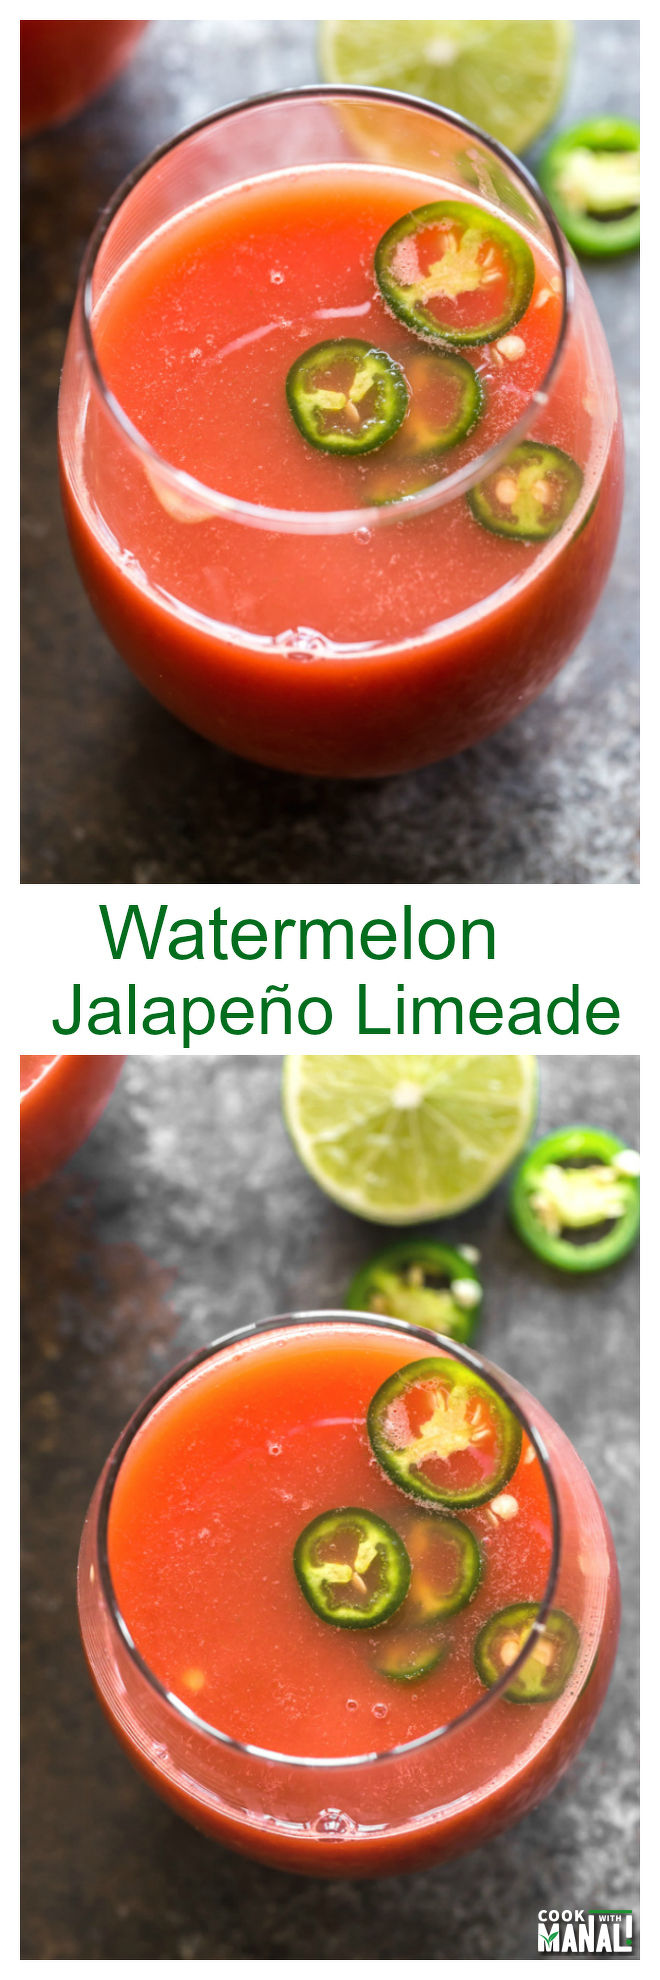 Watermelon Jalapeno Limeade Collage